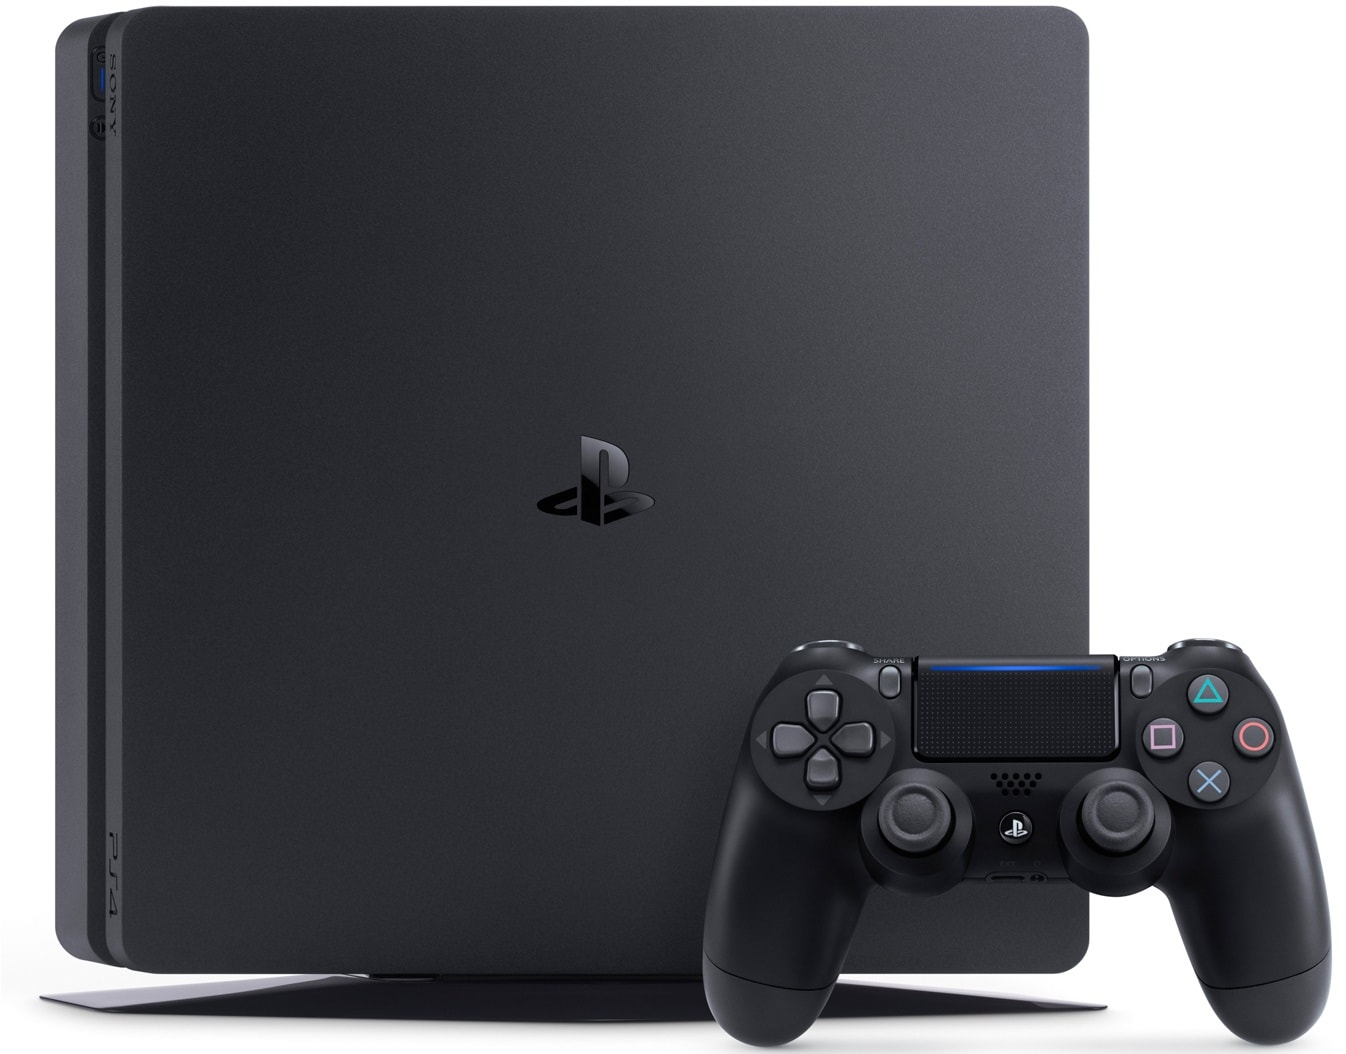 Sony PS4 Slim Price Nepal